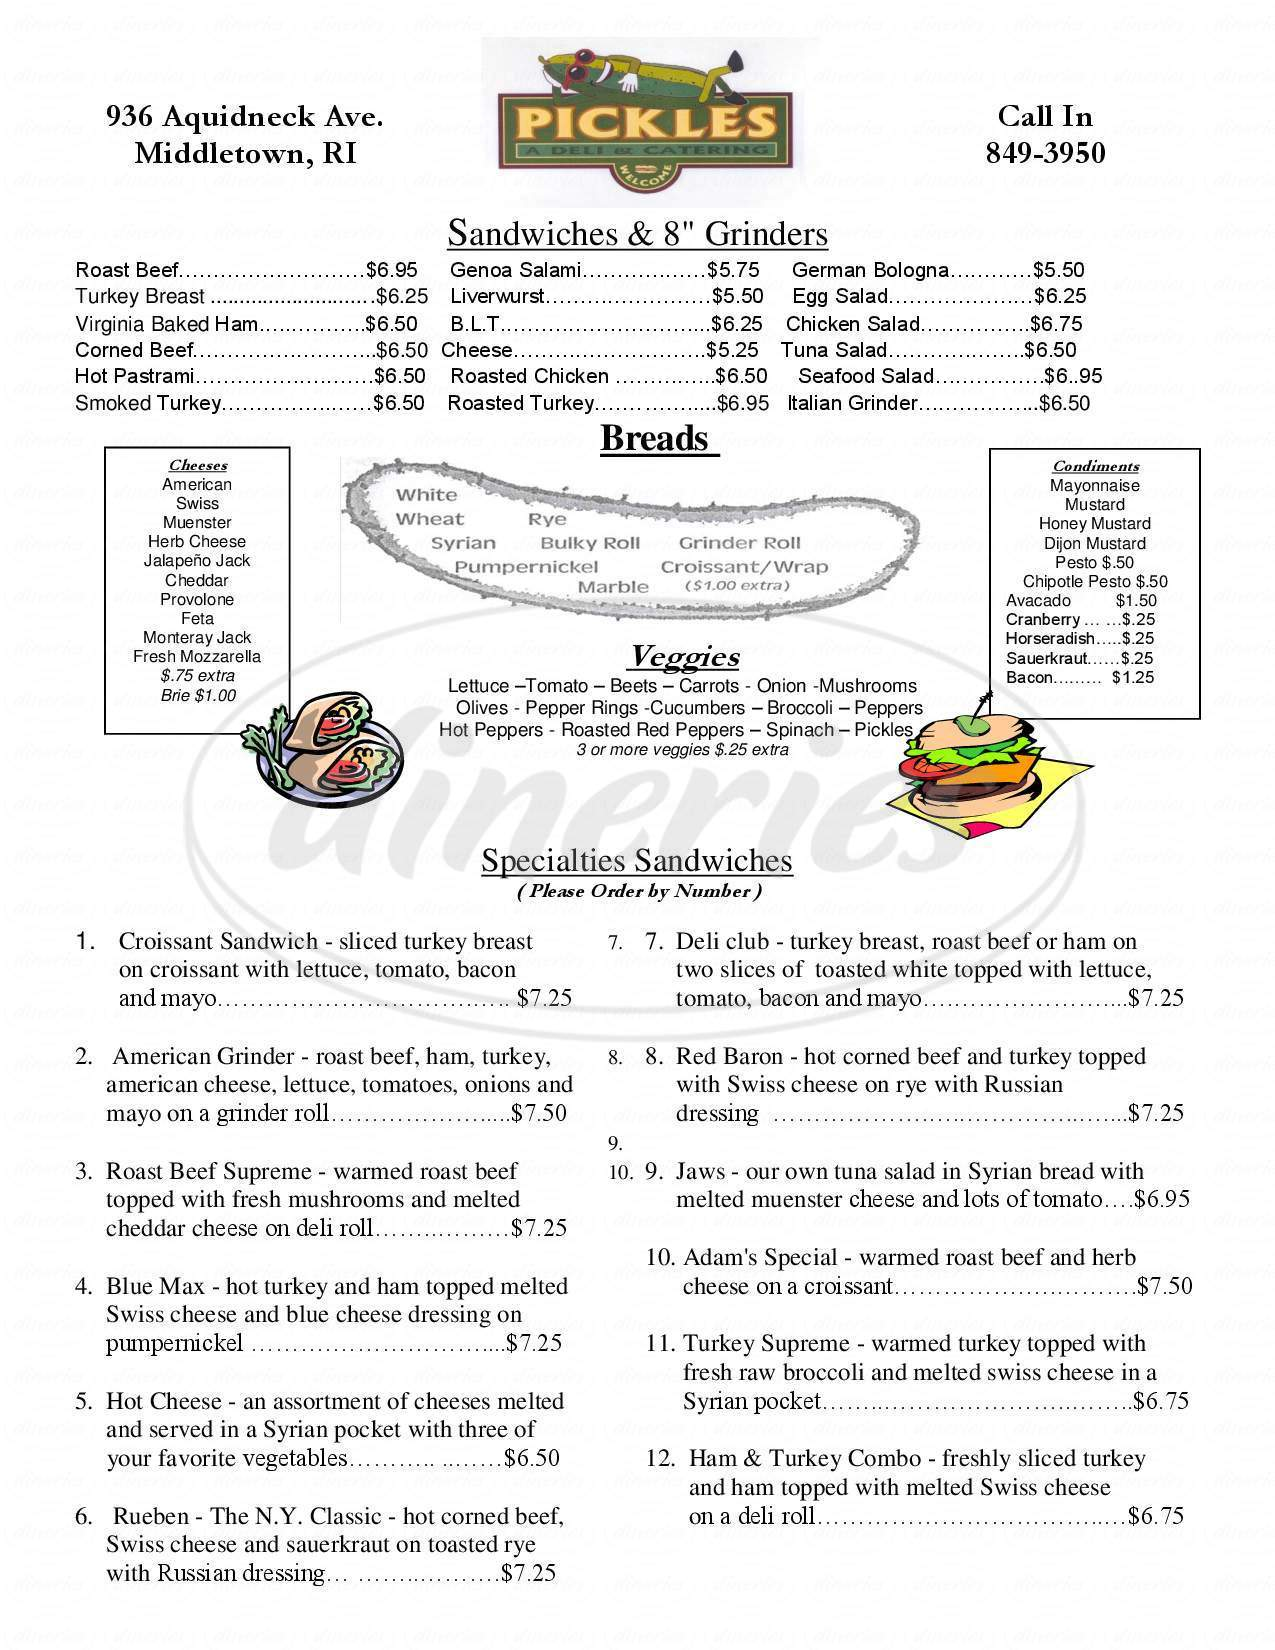 menu for Pickles-A Deli